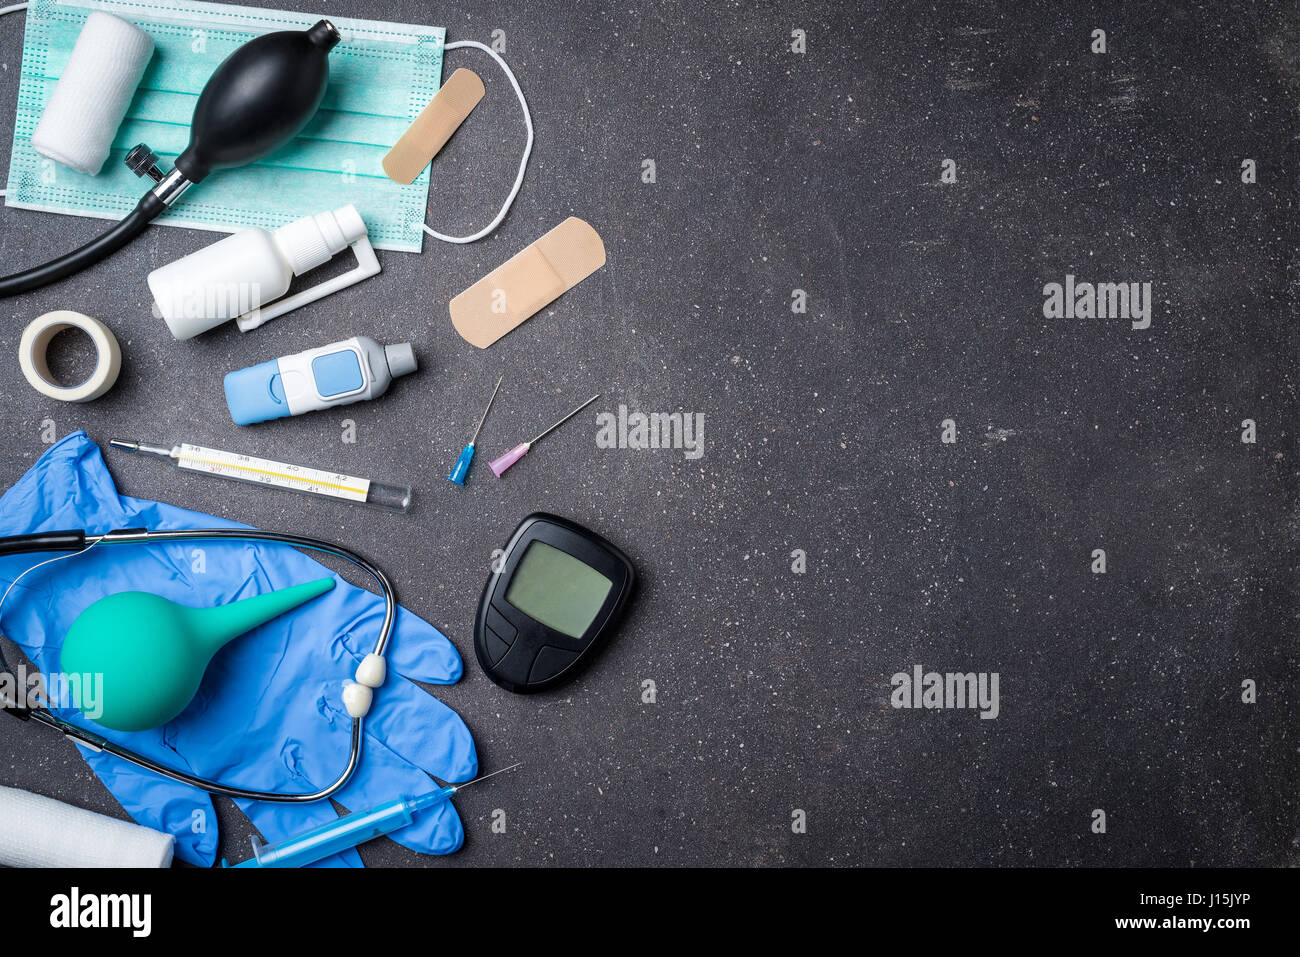 Medical Supplies Stock Photos & Medical Supplies Stock Images - Alamy